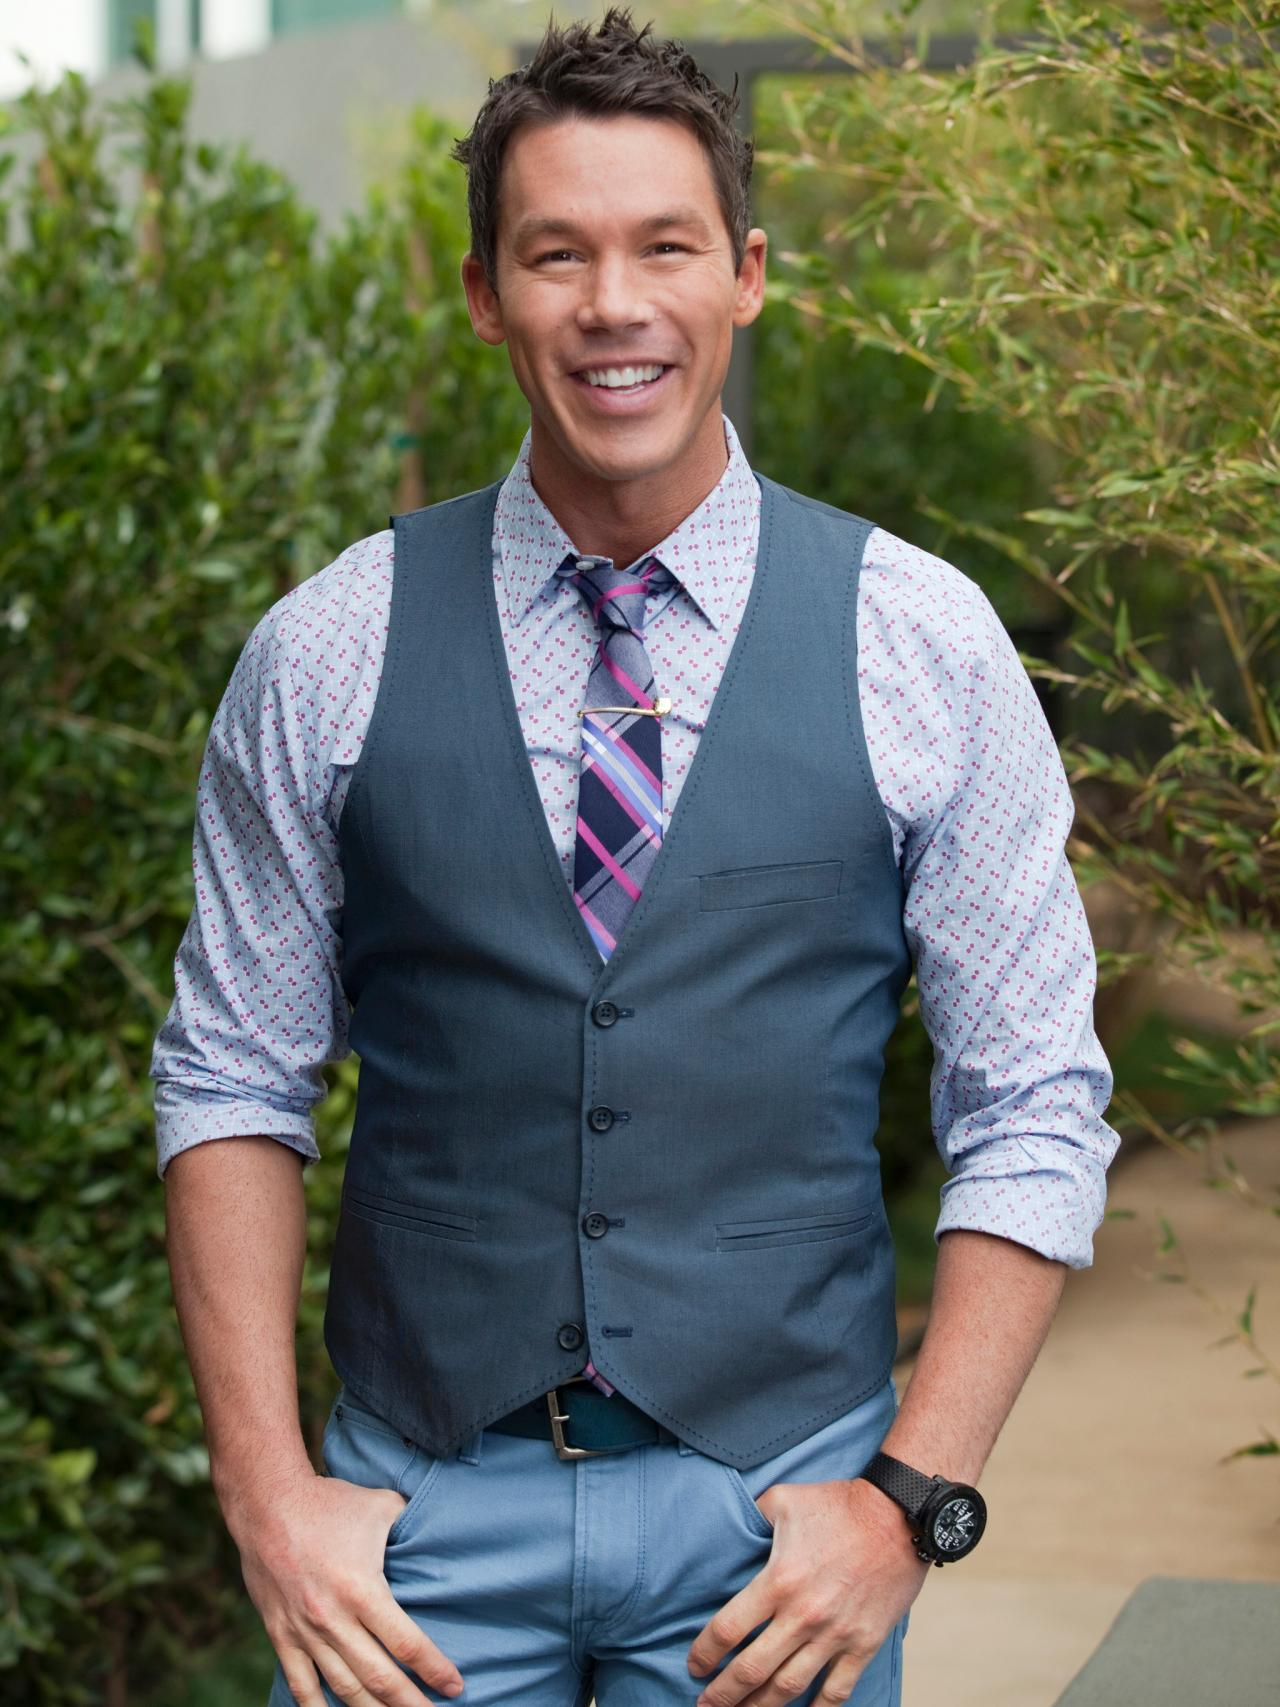 Hgtv david bromstad download foto gambar wallpaper for David hgtv designer